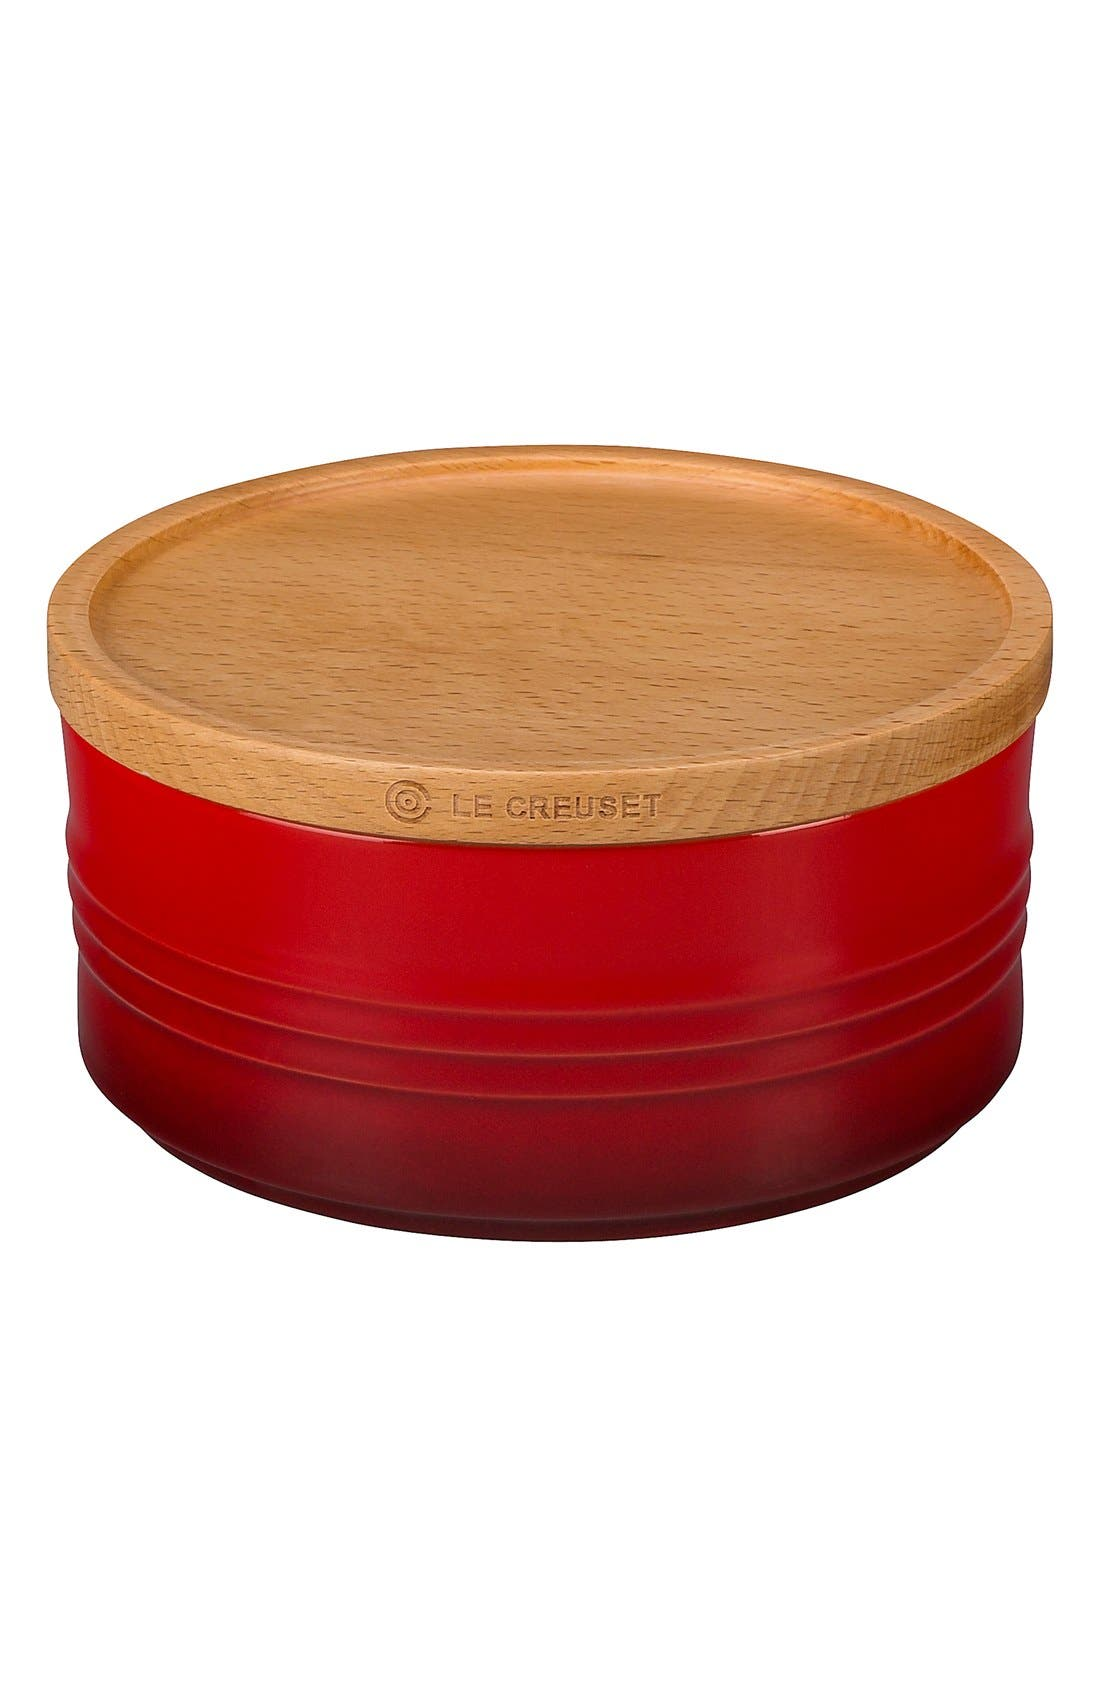 Main Image - Le Creuset Glazed Stoneware 23 Ounce Storage Canister with Wooden Lid